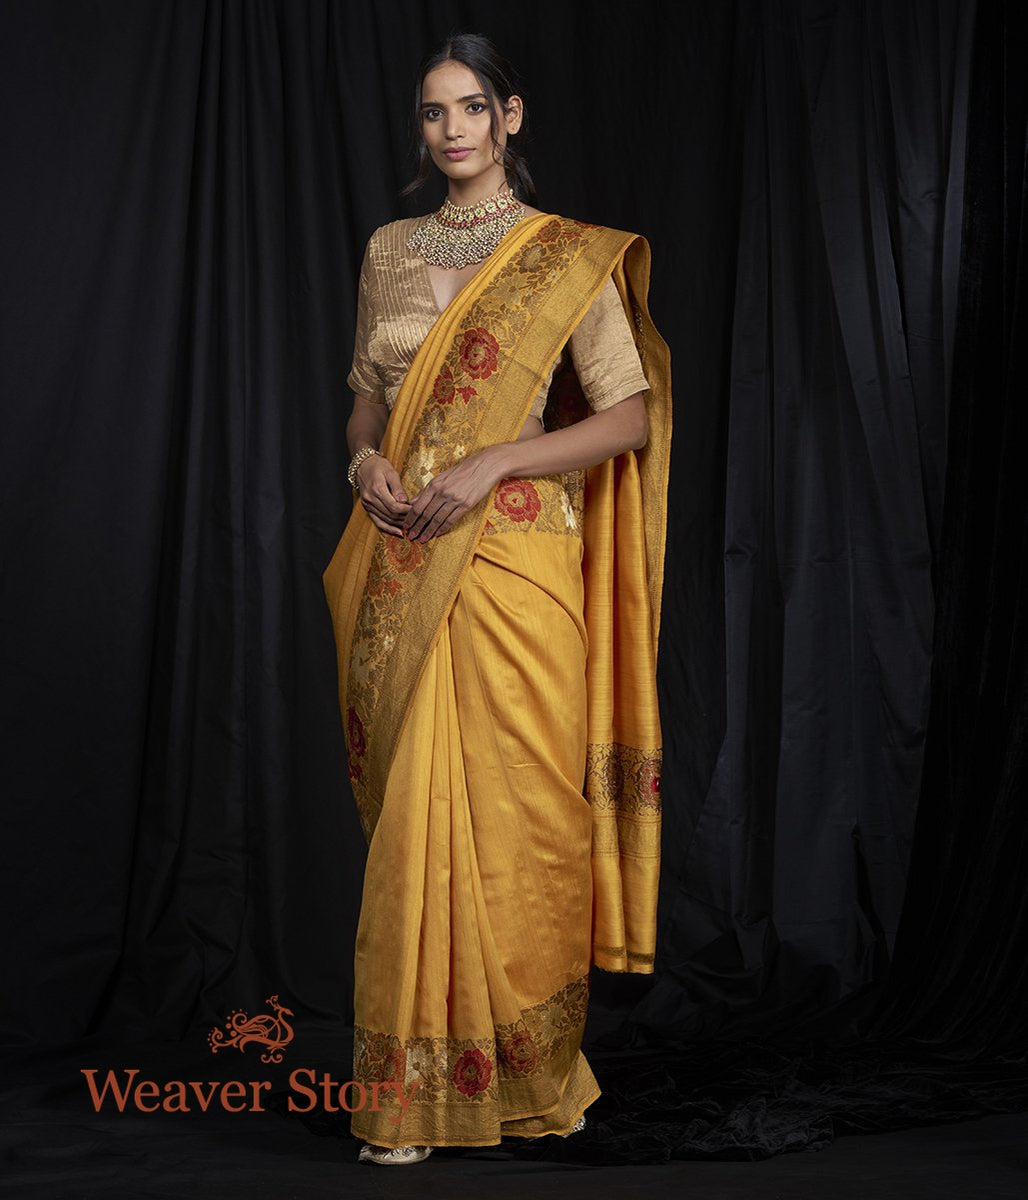 Handwoven Munga Saree with Meenakari Floral Border